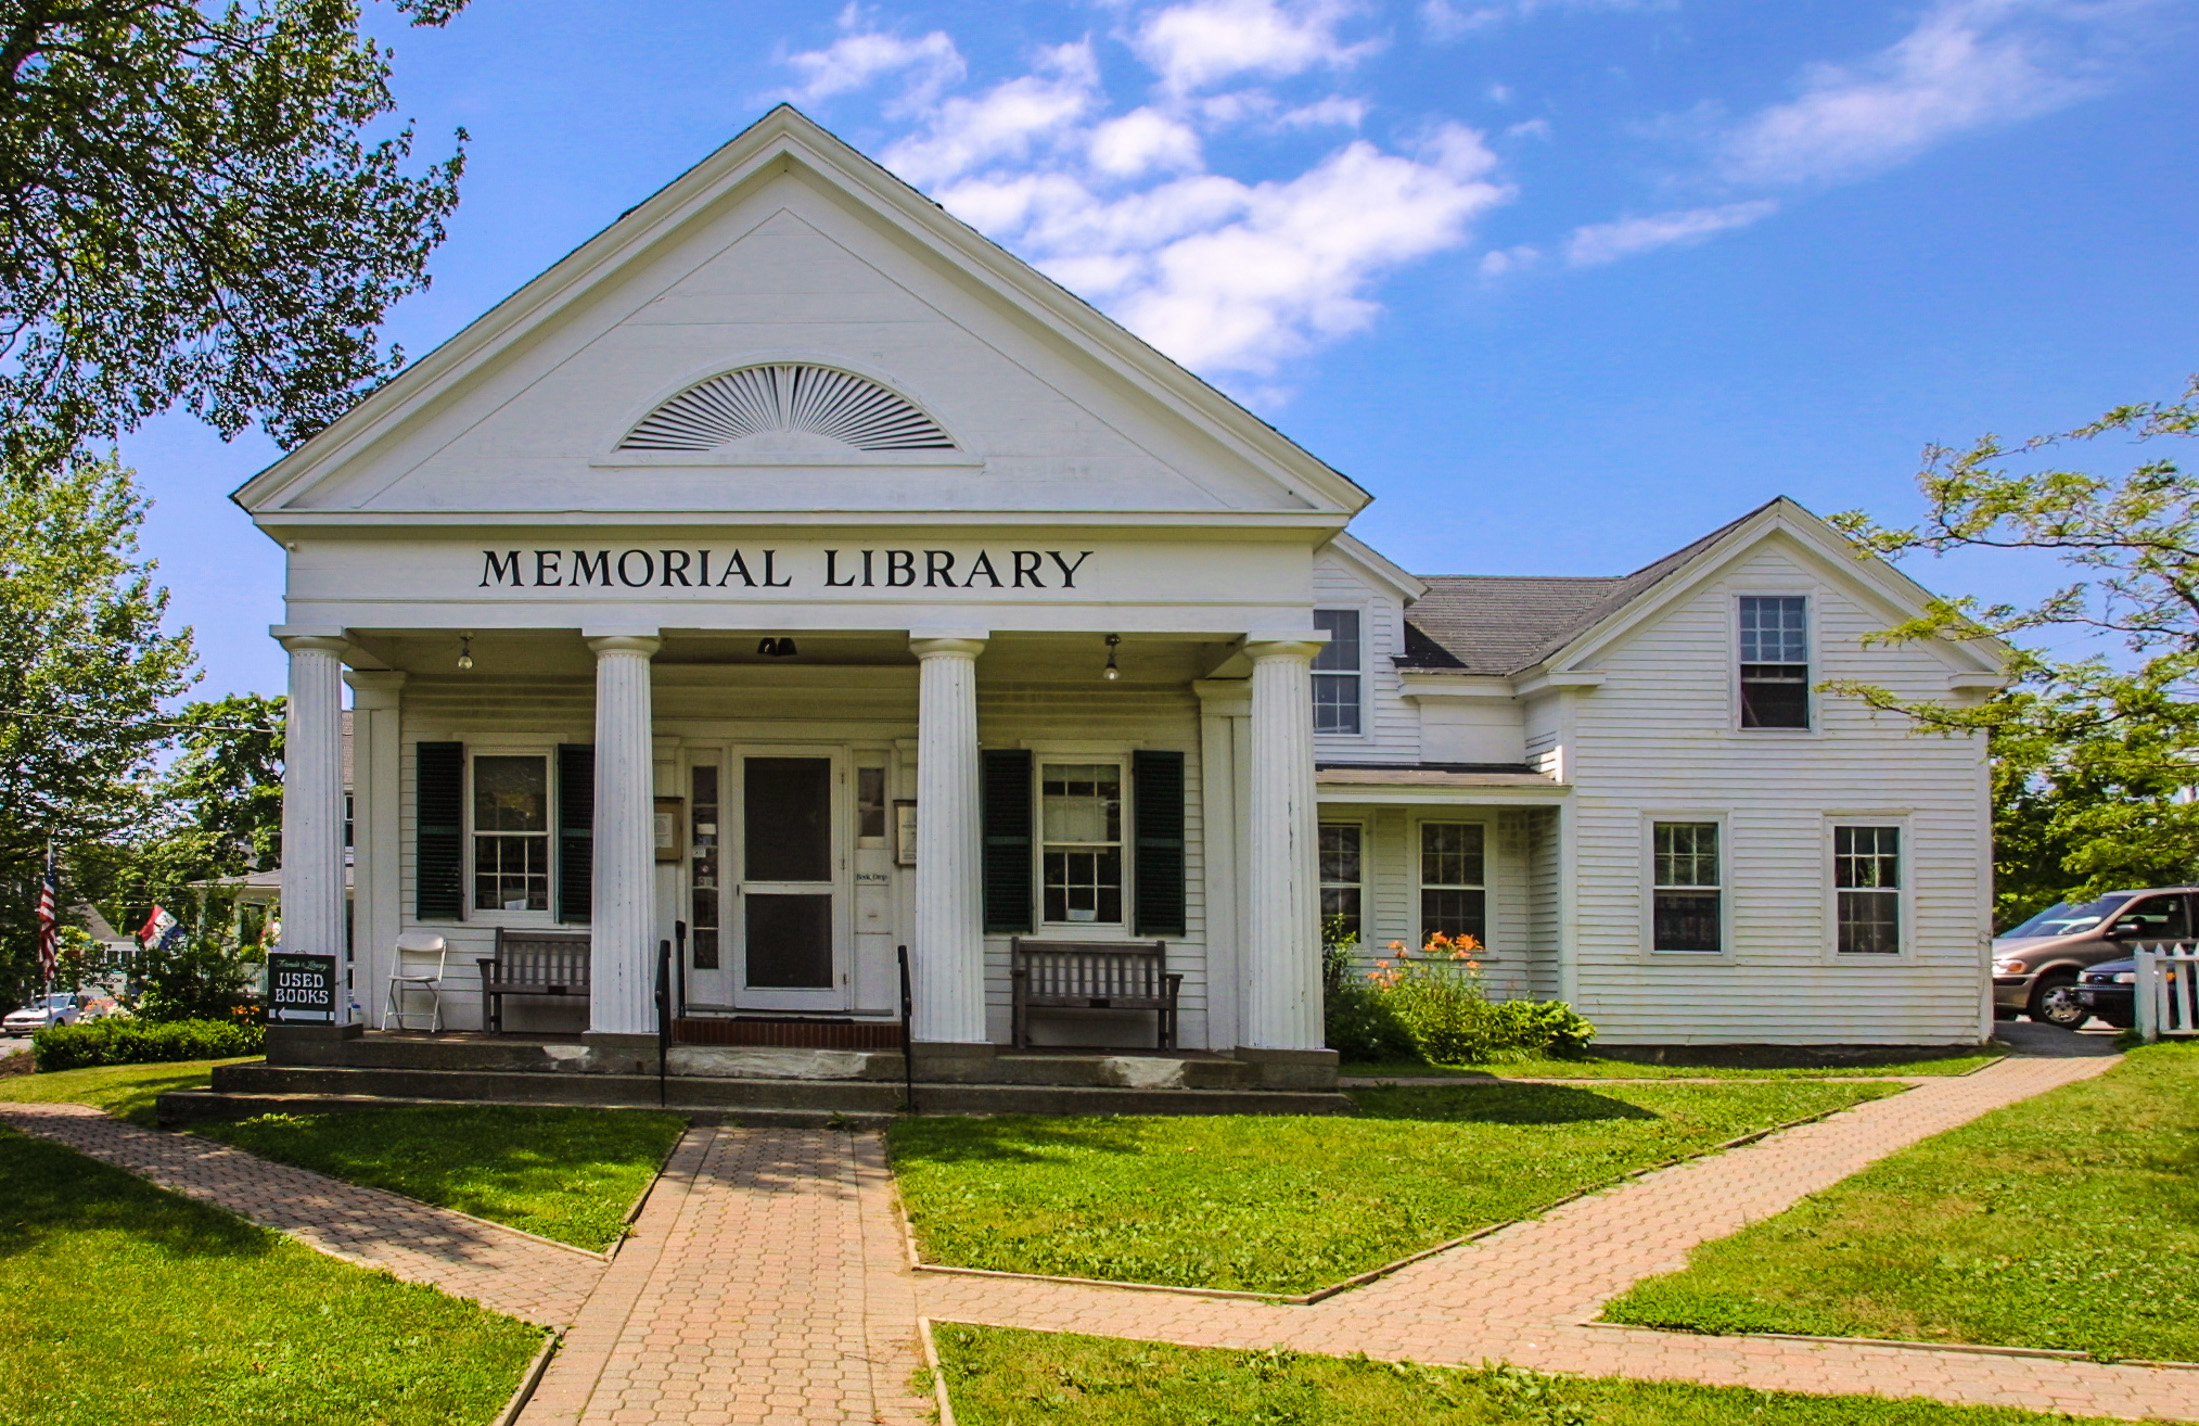 Boothbay Harbor Memorial Library Wikipedia